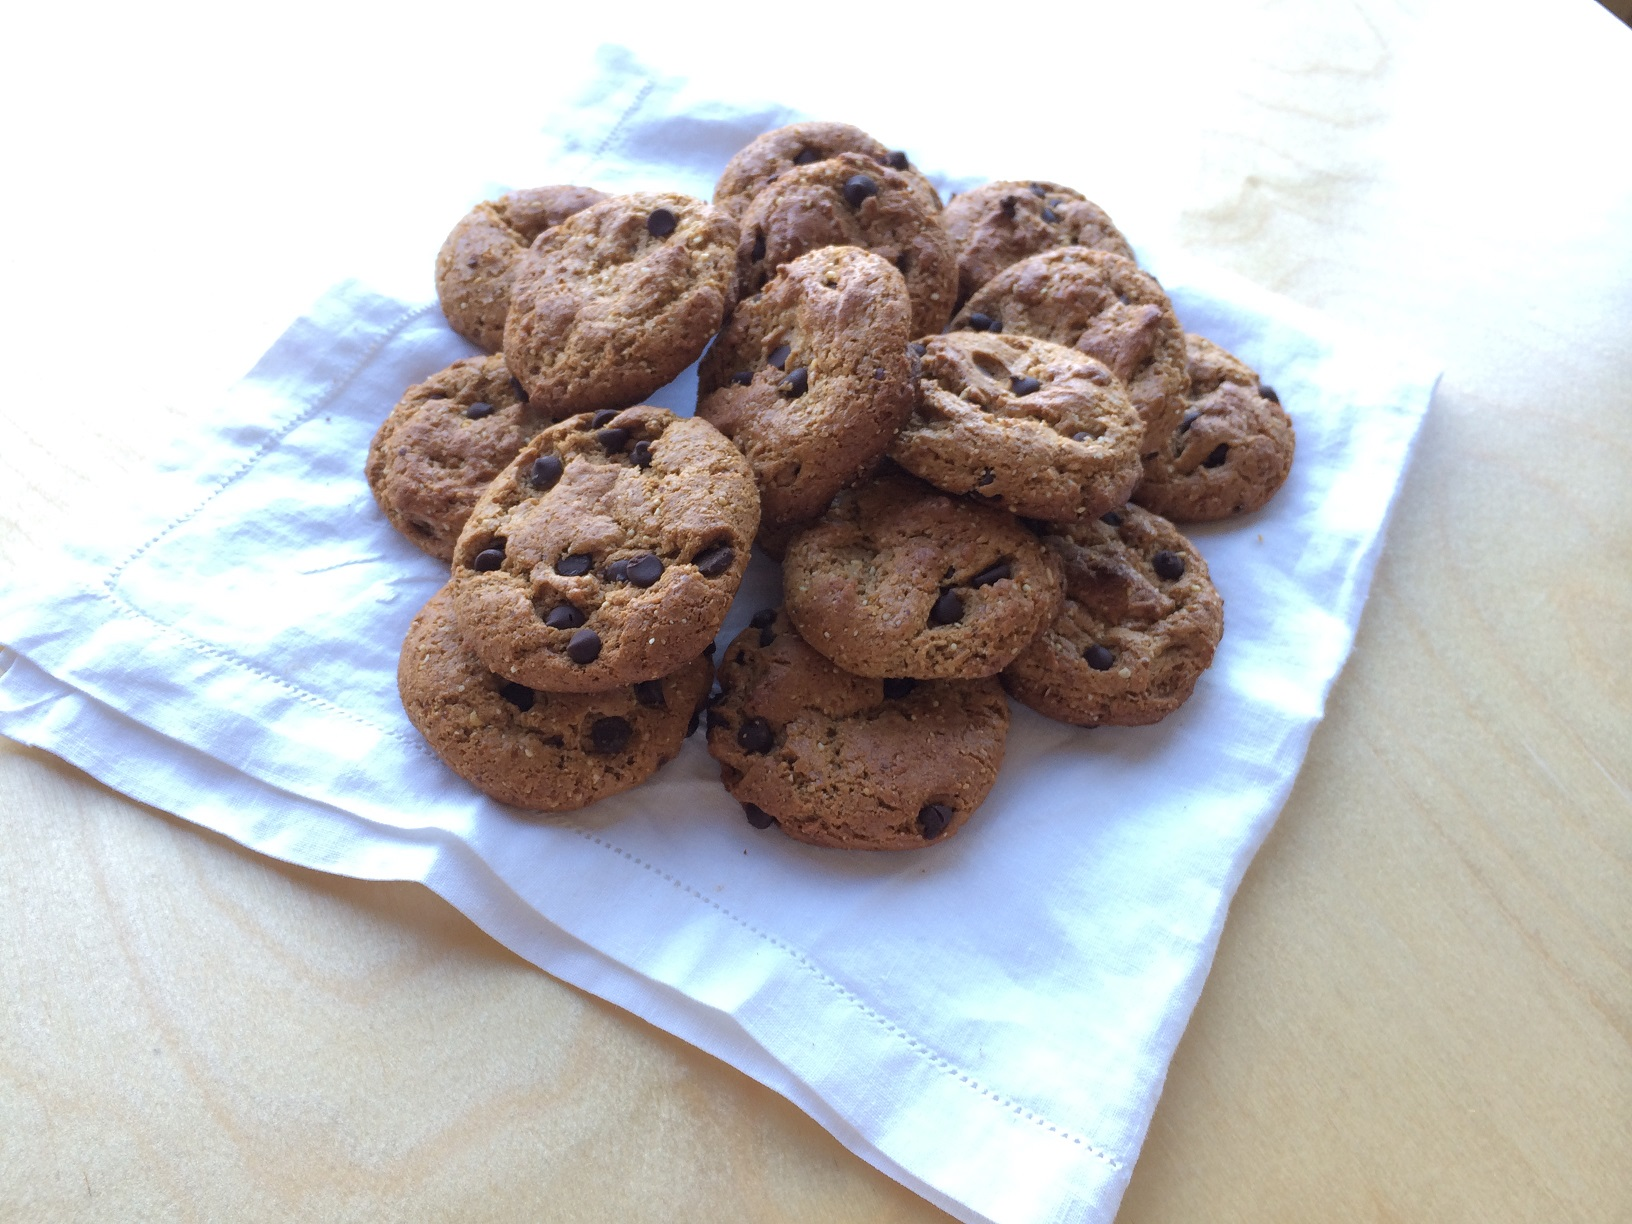 Chocoate Chip Almond Drop Cookies